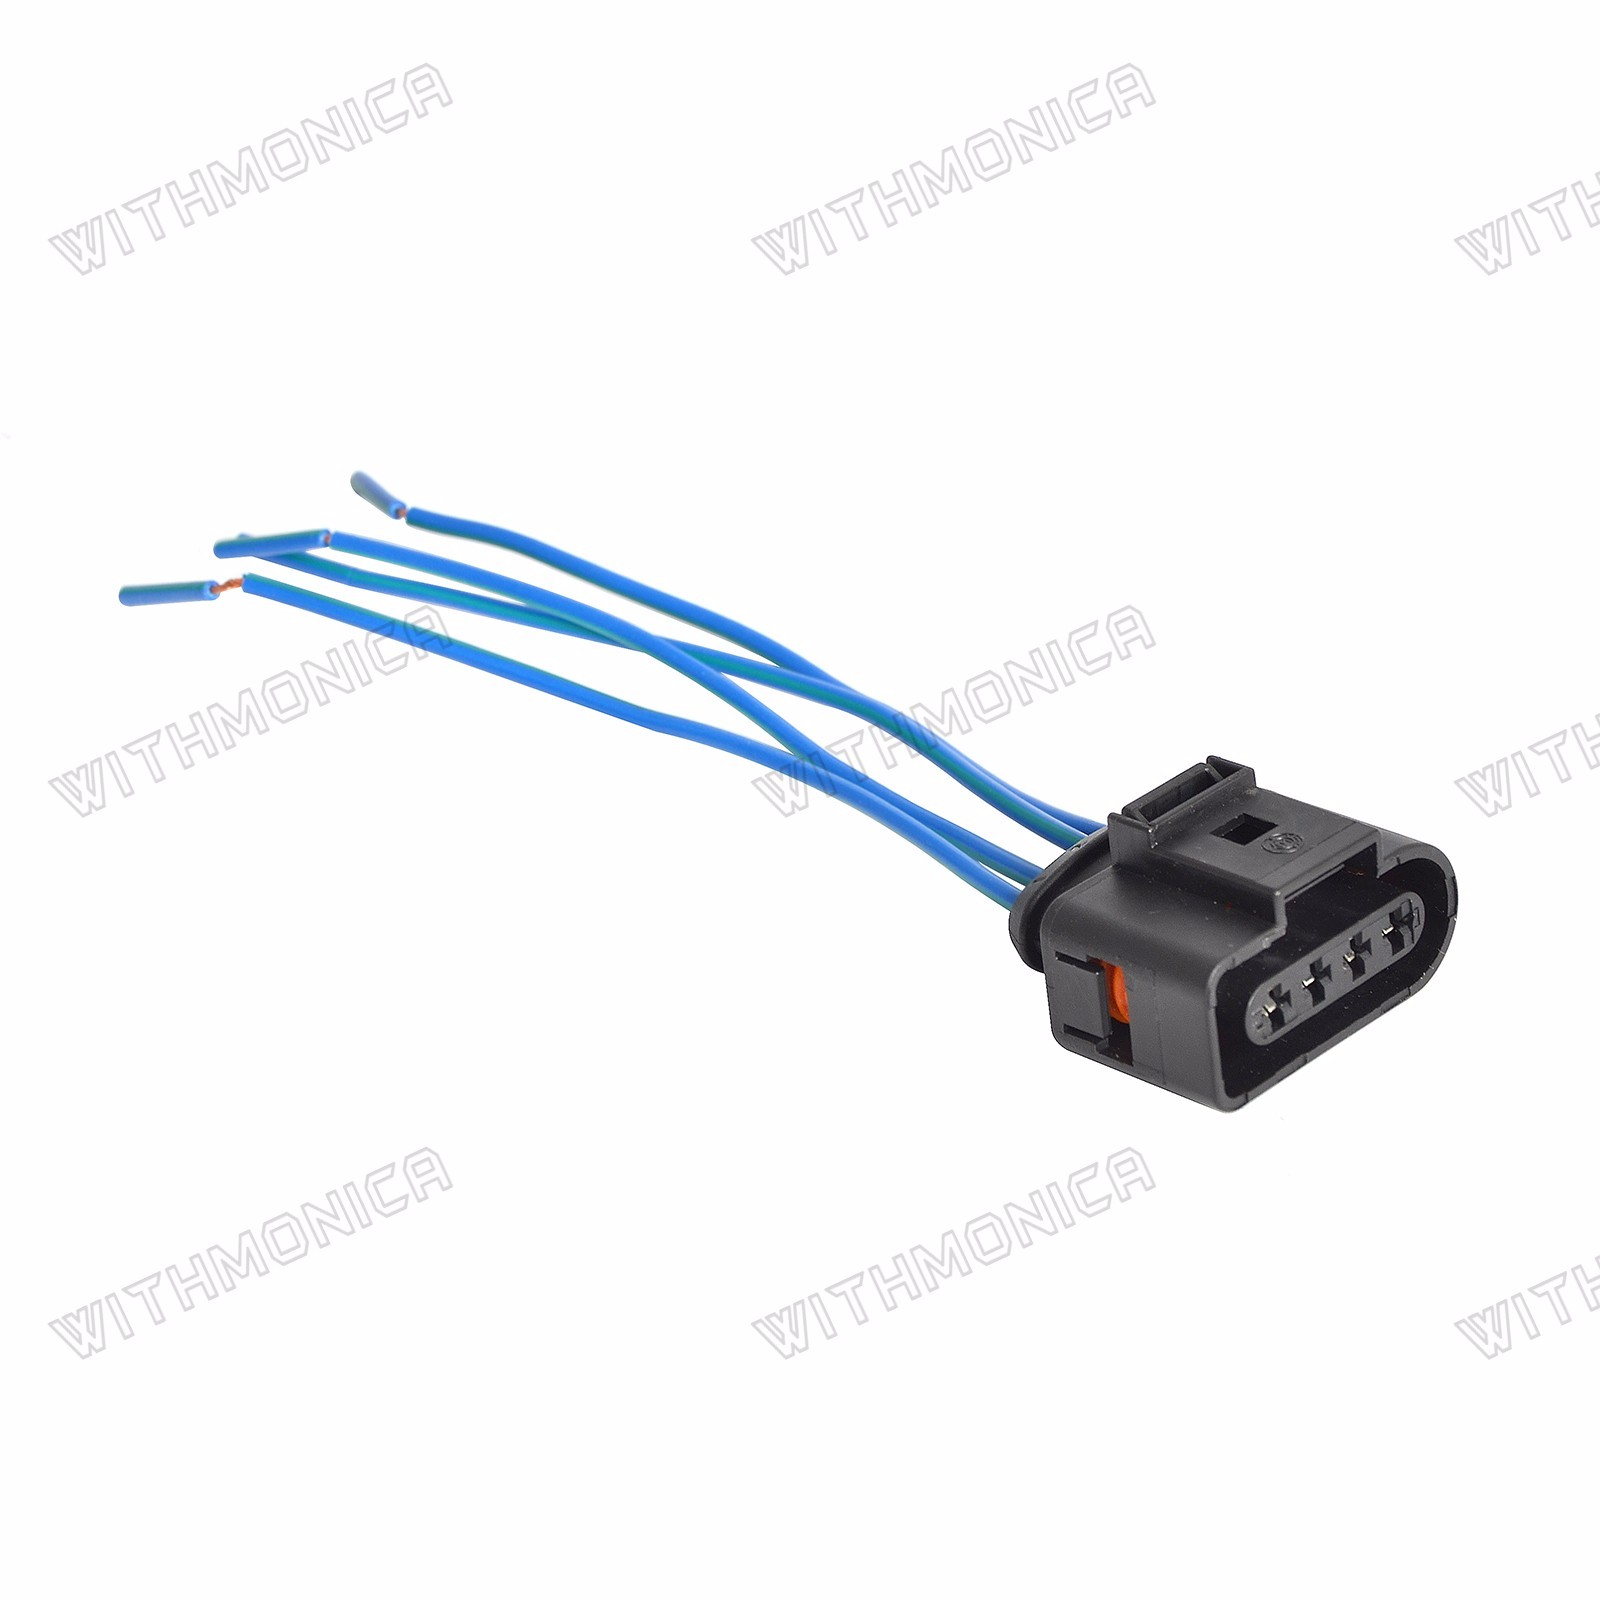 4 Set Ignition Coil Wiring Harness Connector Repair Kit Fits For Vehicle Audivolkswagen